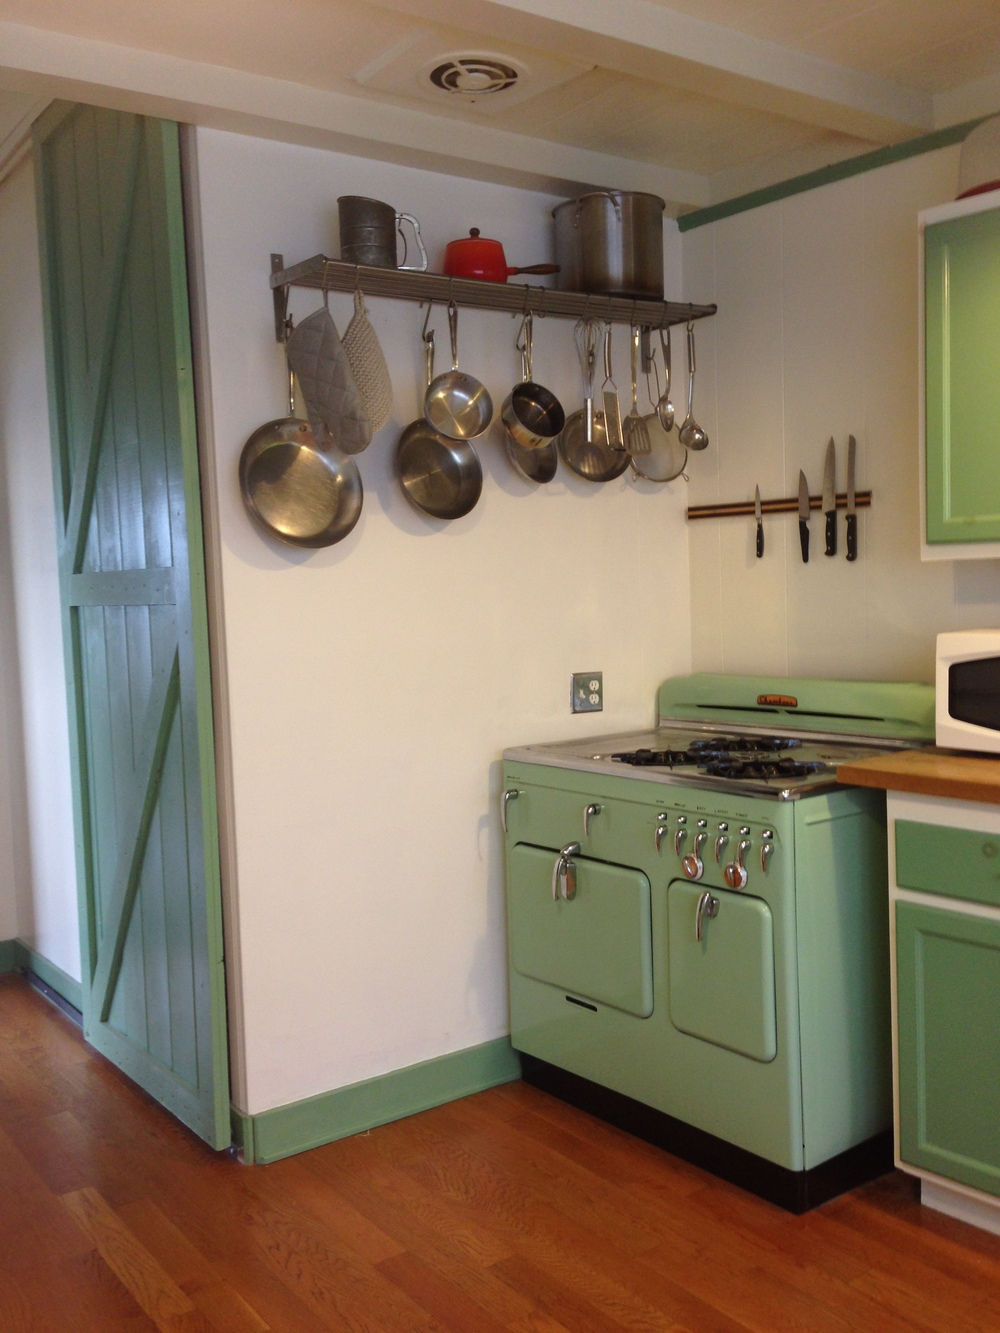 The kitchen had the original stove, and a cool sliding barn door, for the pantry. I loved the colors!